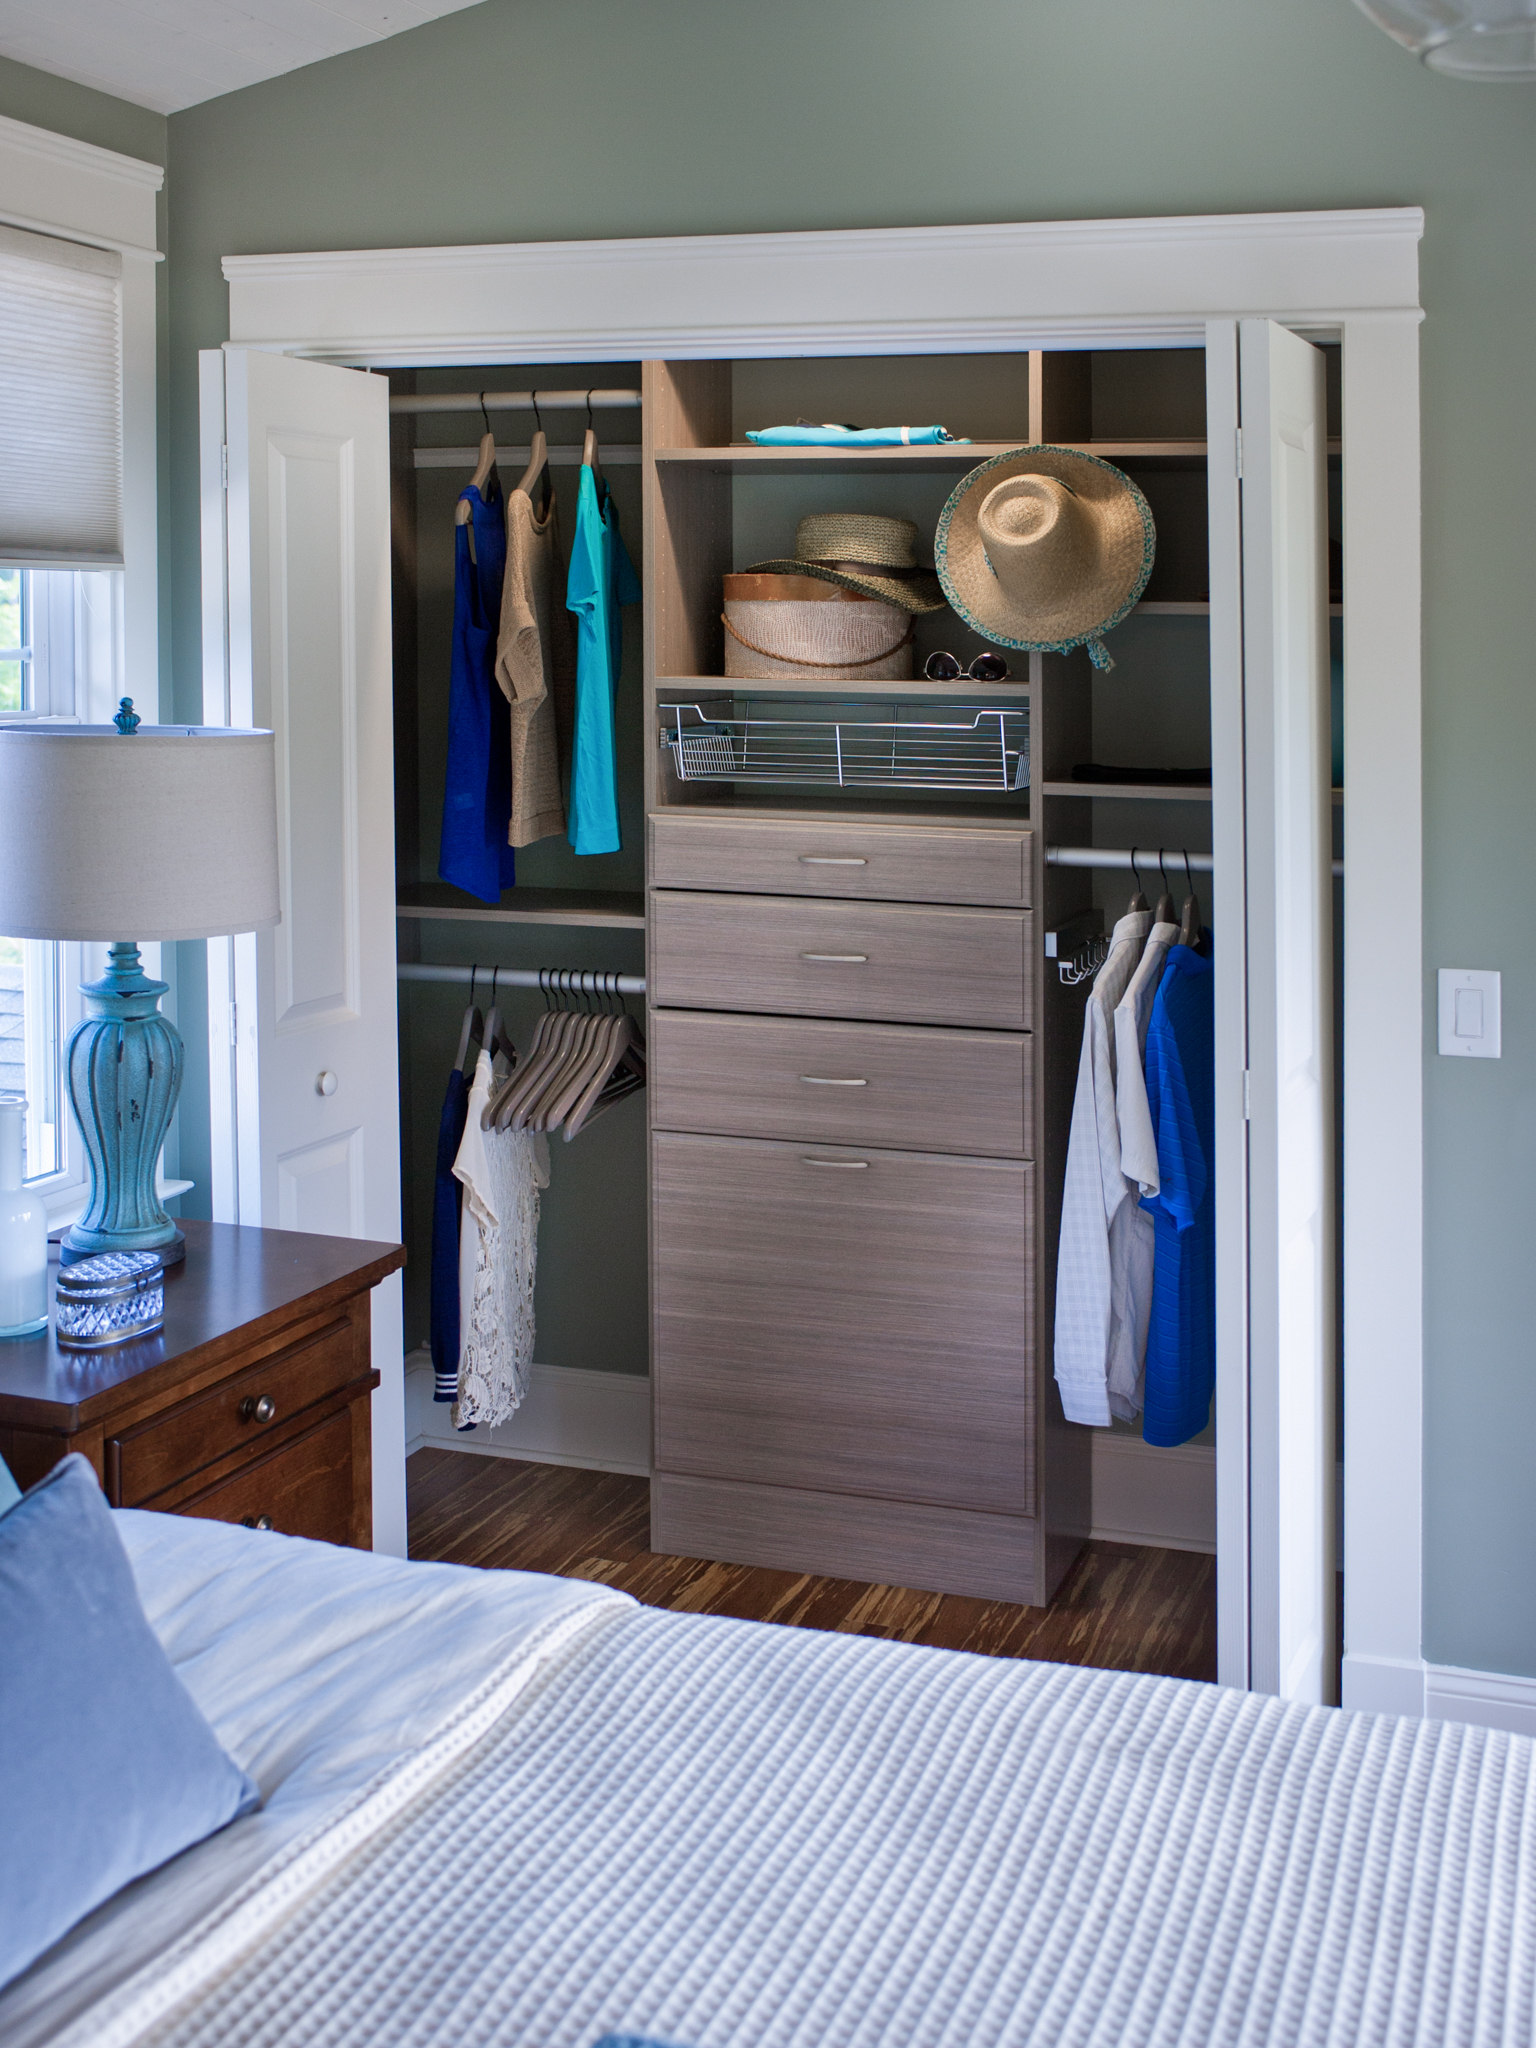 If The Master Bedroom In Your Vacation Home Is On The Smaller Side,  Consider Ditching The Dresser And Using Drawers In The Closet To Free Up  Floor Space.